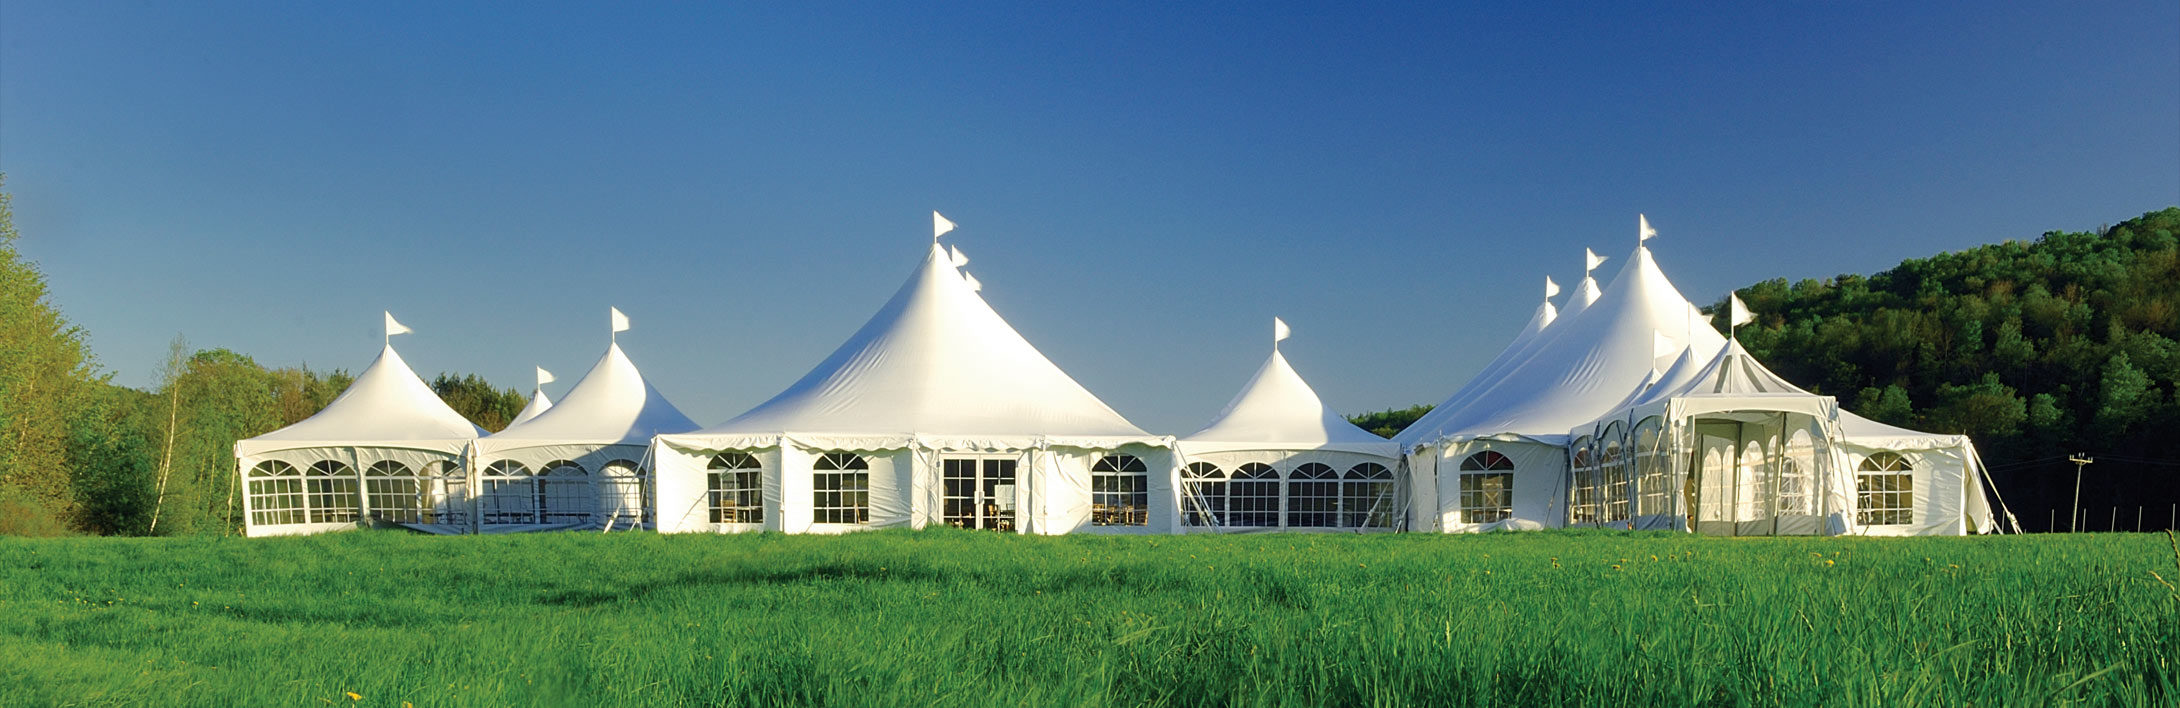 Tents in Dubai